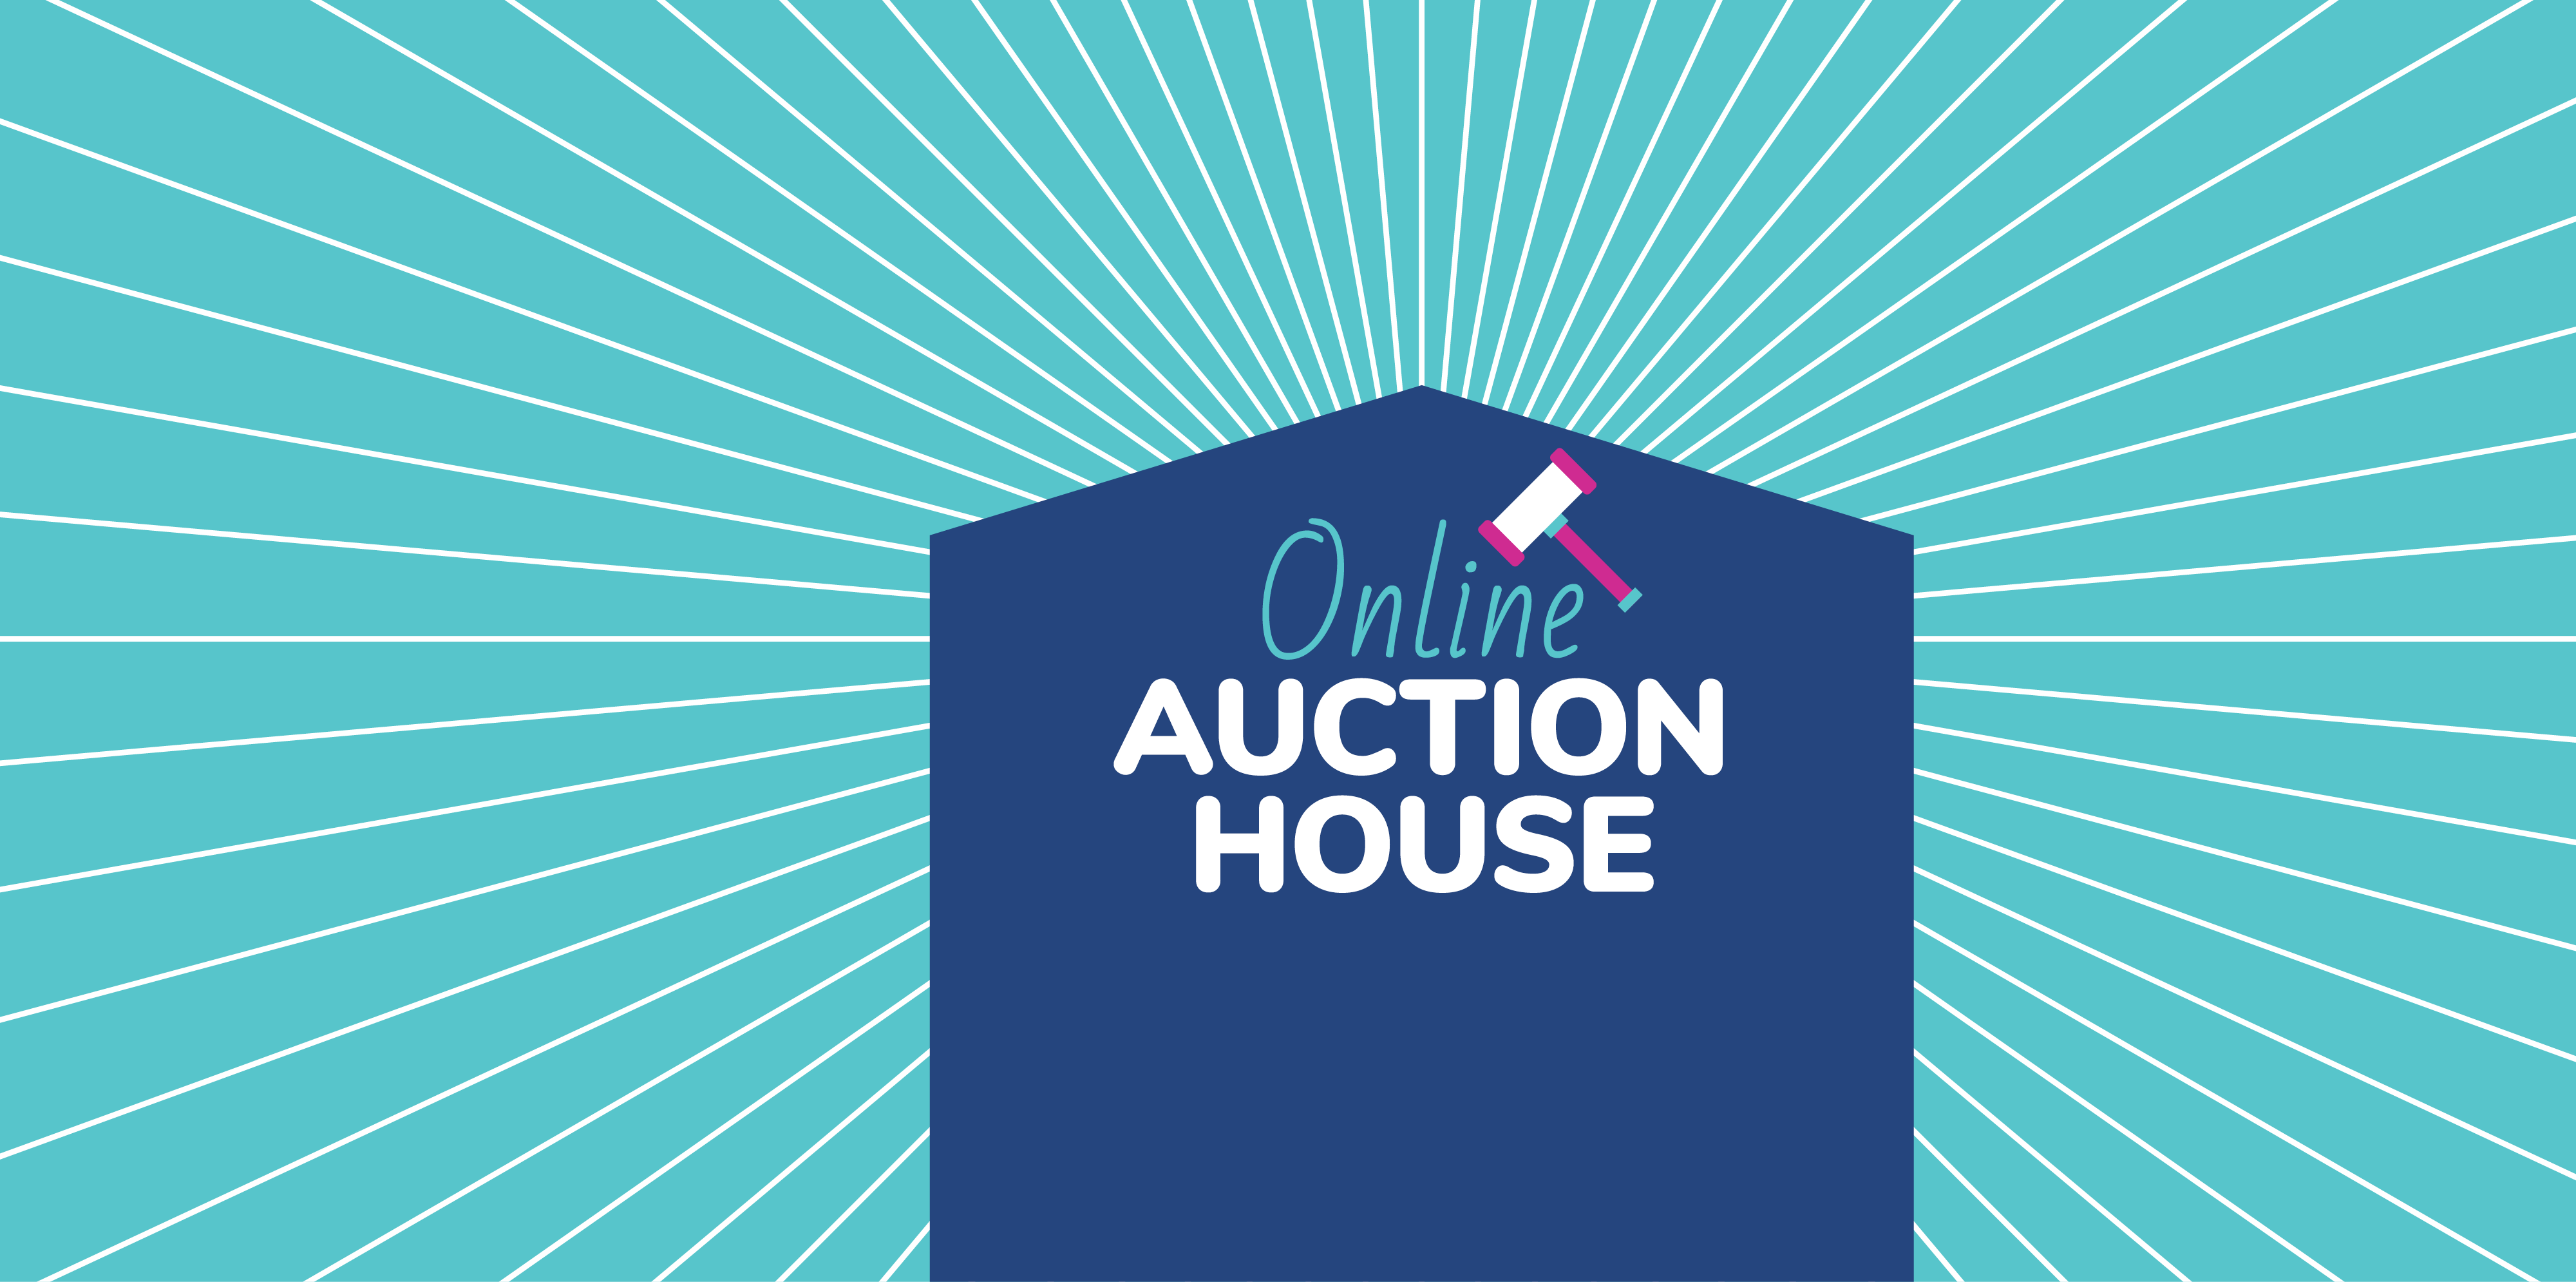 Online Auction House raises £30,825 thanks to your generous support